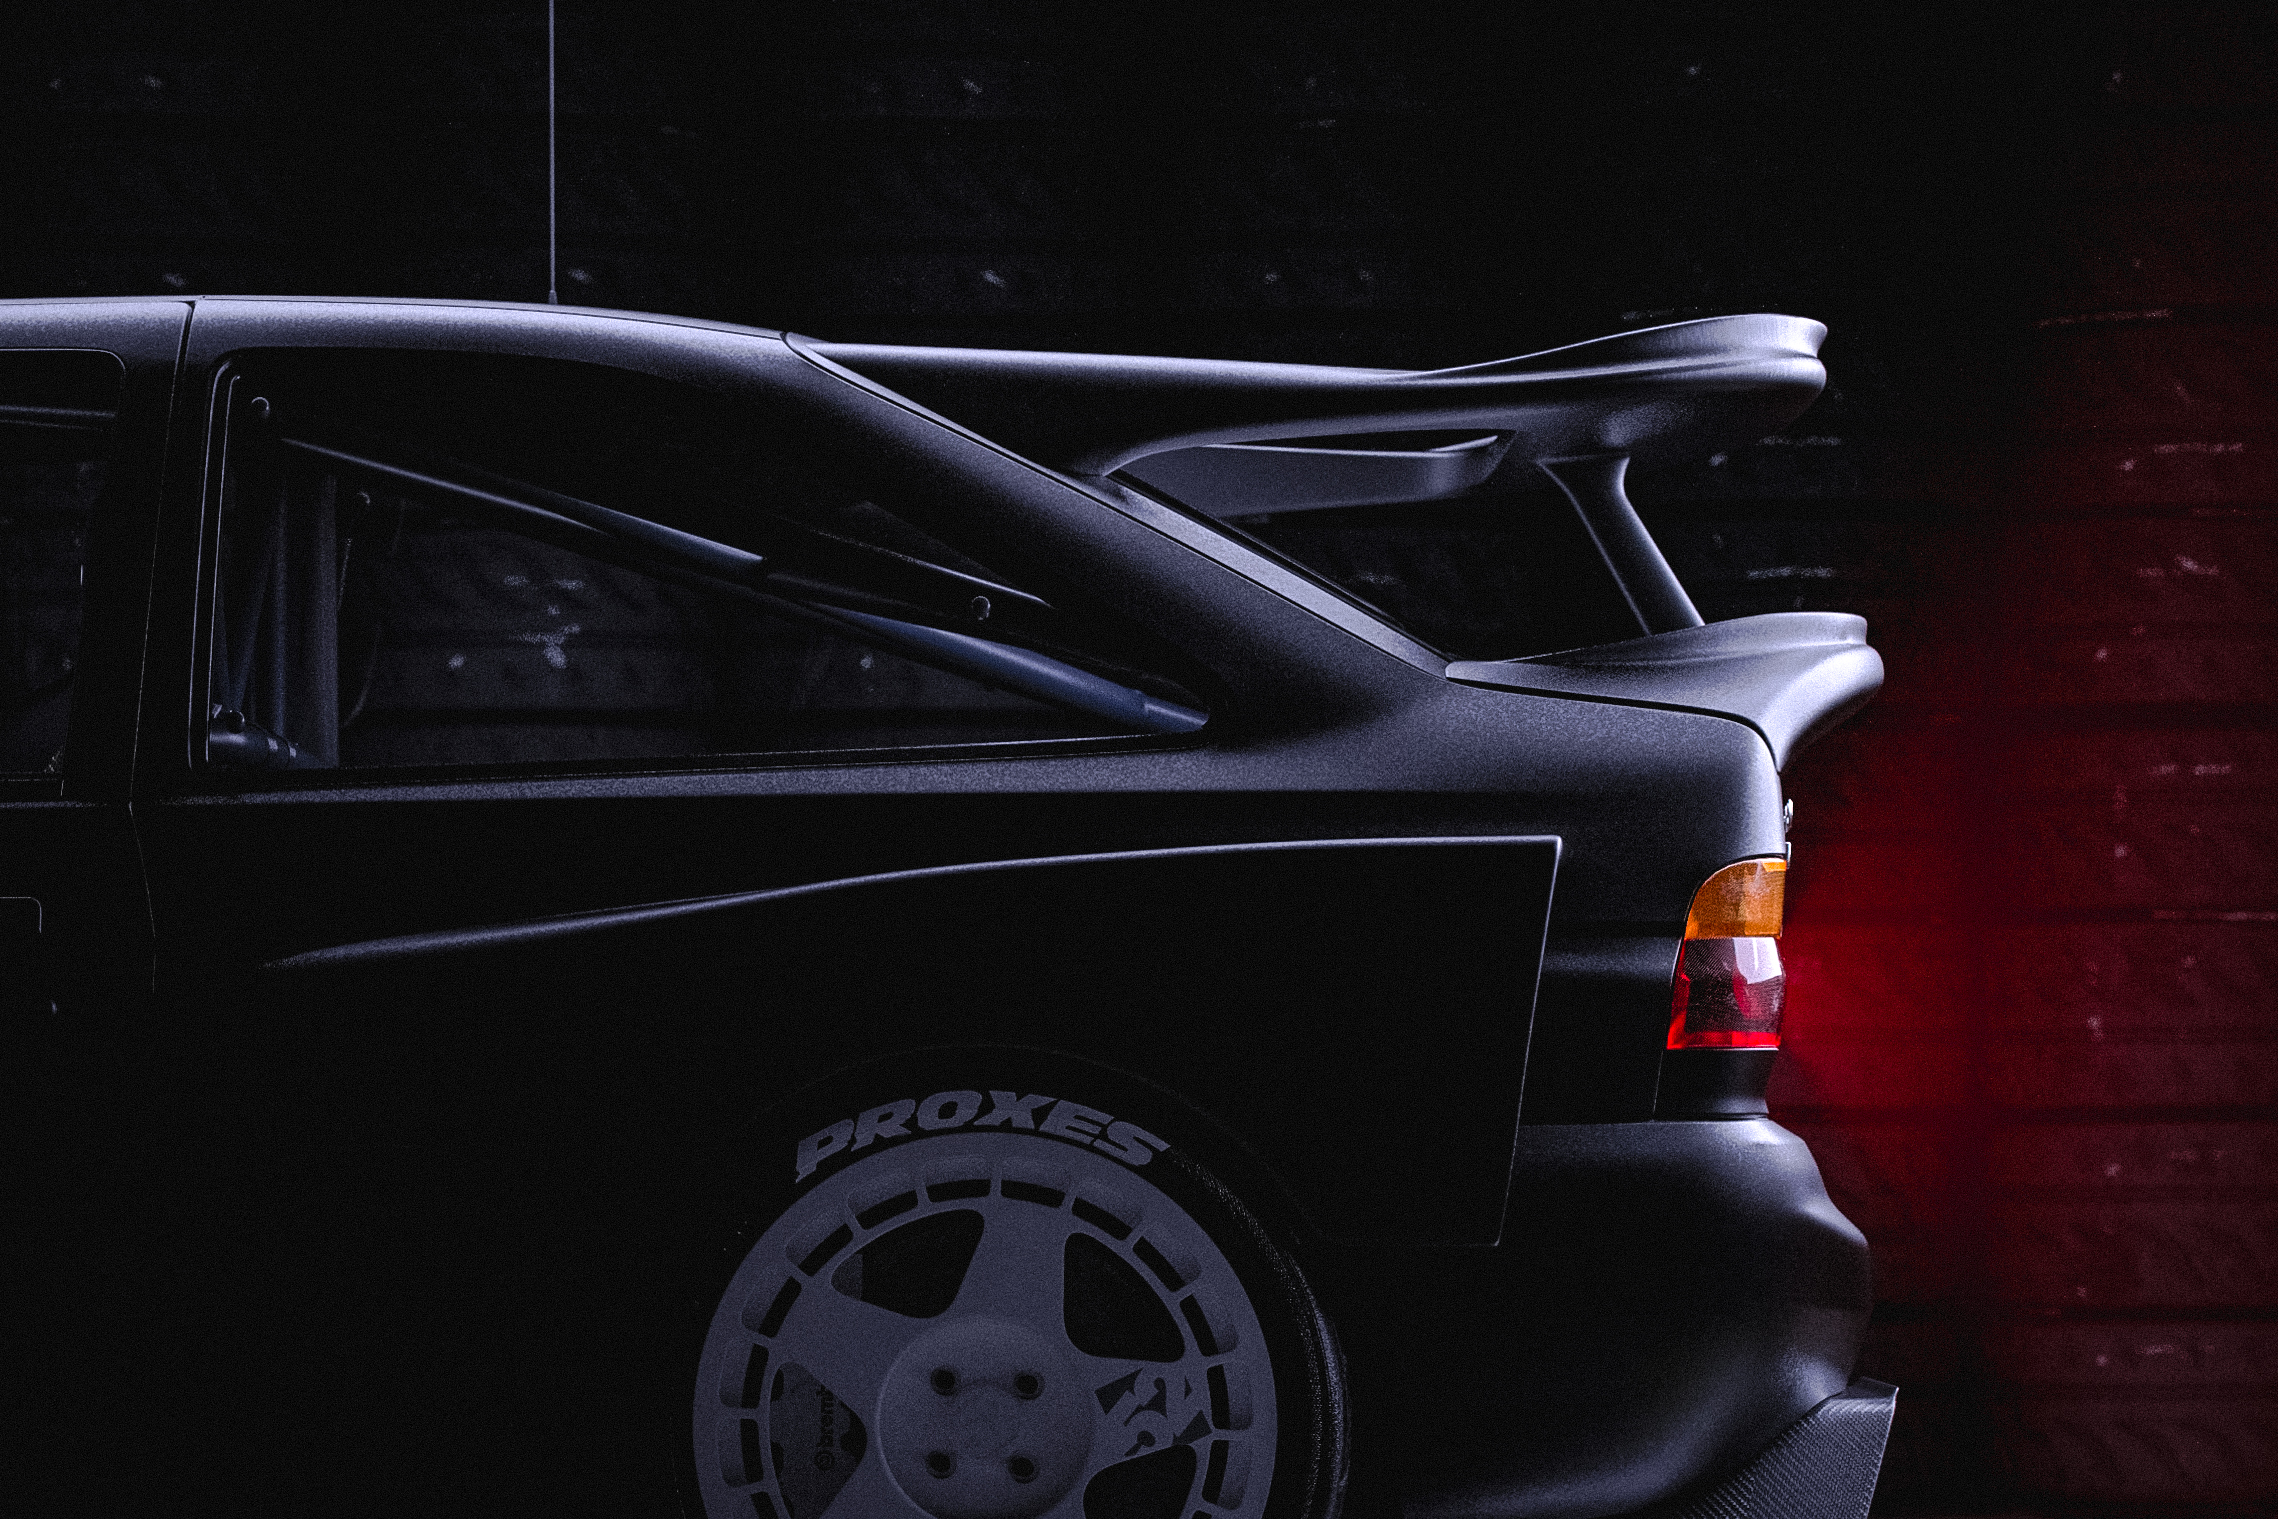 FORD_ESCORT_RS_COSWORTH_AT_013_025.jpg